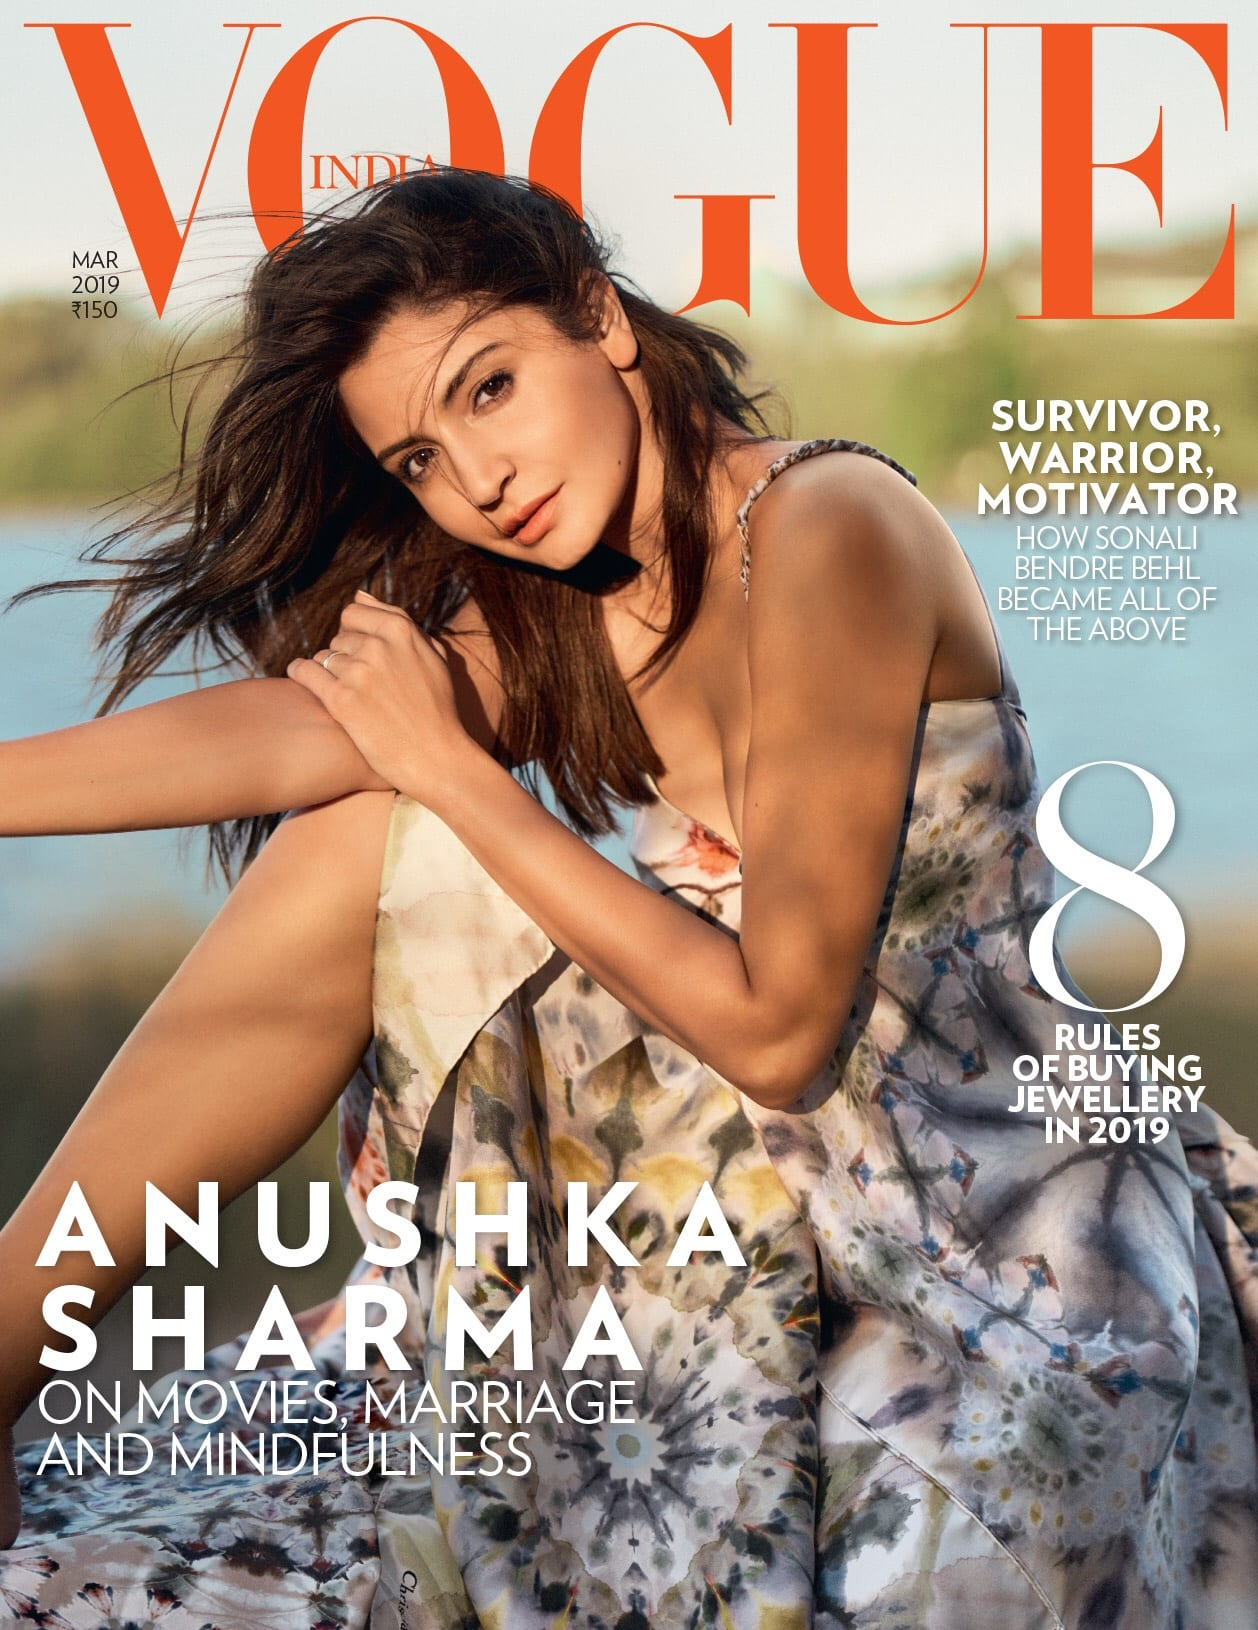 Anushka Sharma - Vogue India cover